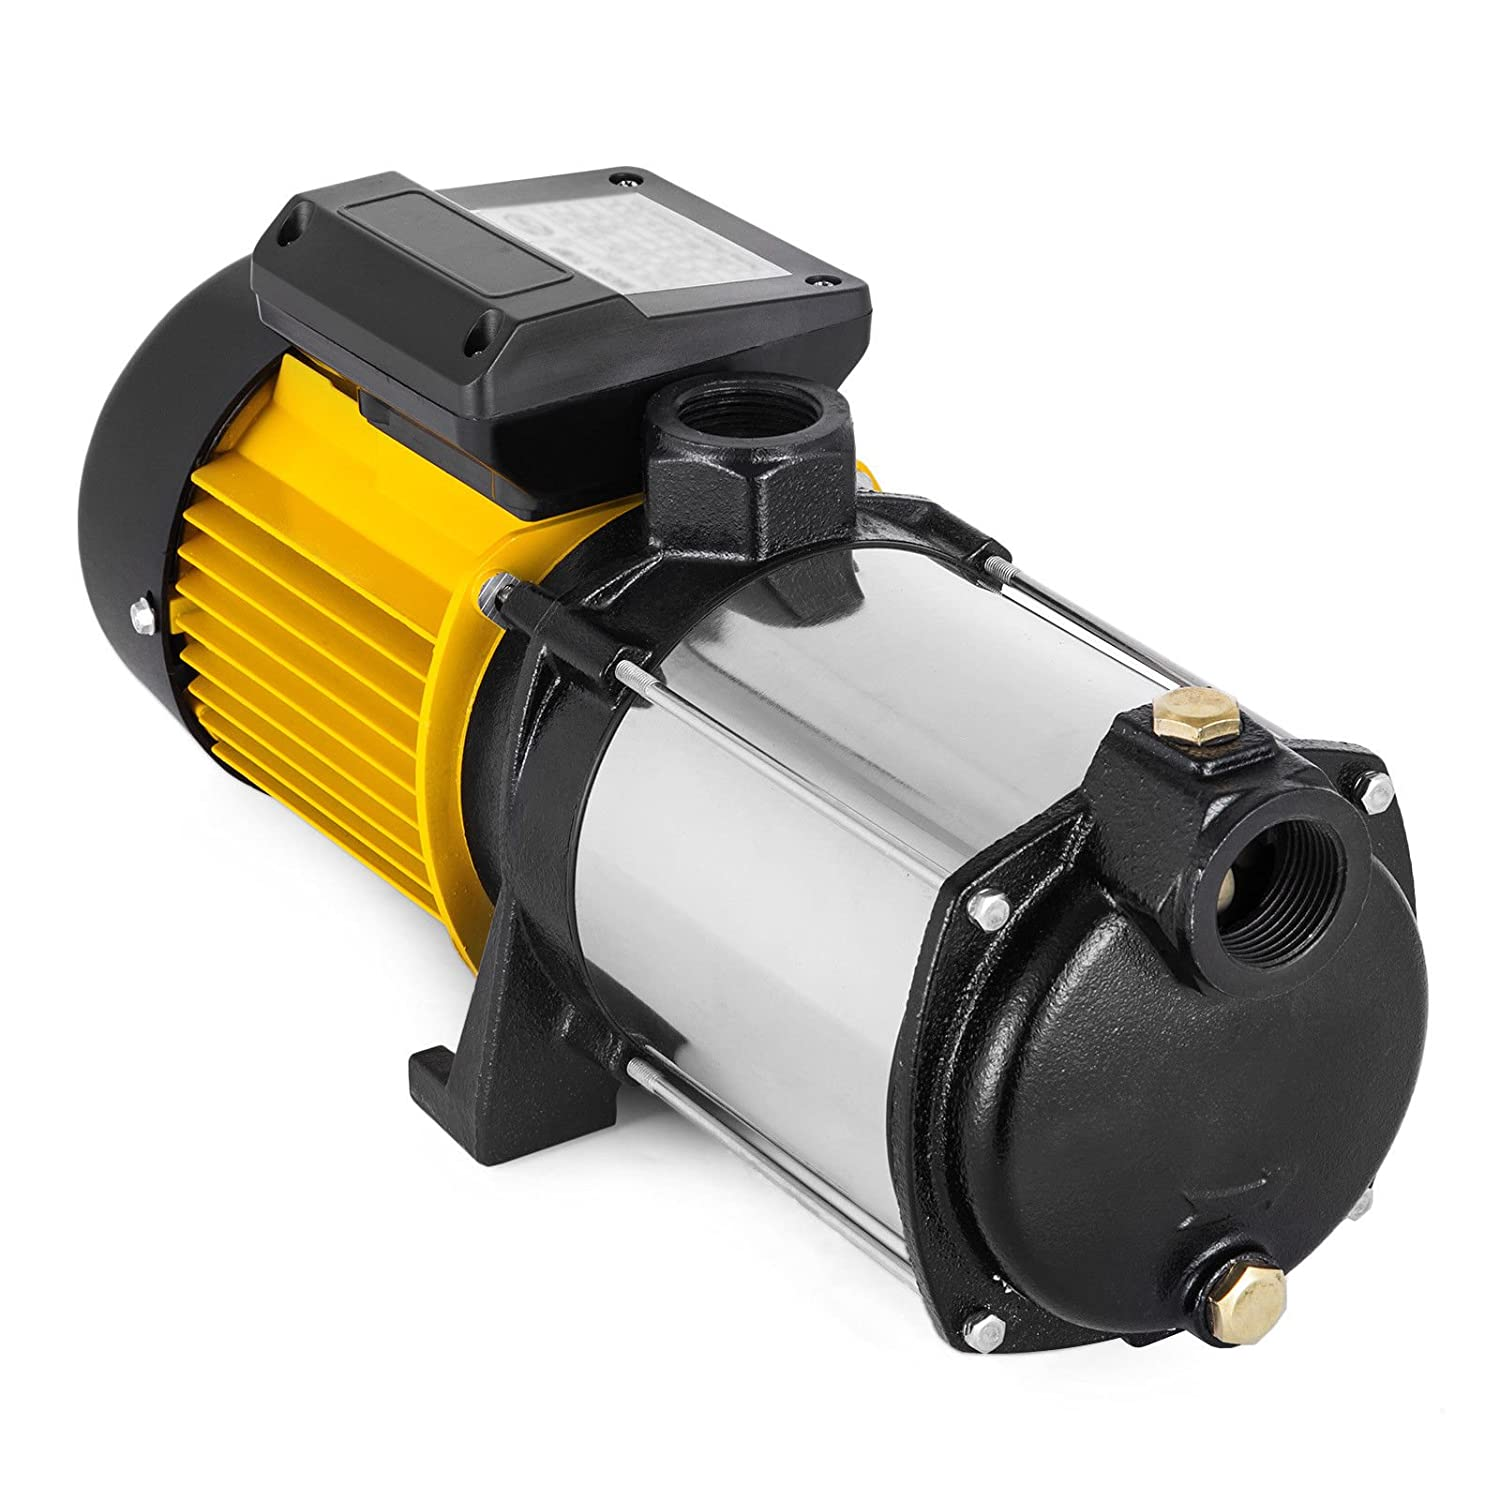 Hopopular MC-2200 Centrifugal Booster Water Pump 9600 L/H Farm with Pressure Switch Jet Pump 2200W Well Garden Water Pump (MC-2200 with Pressur Switch)